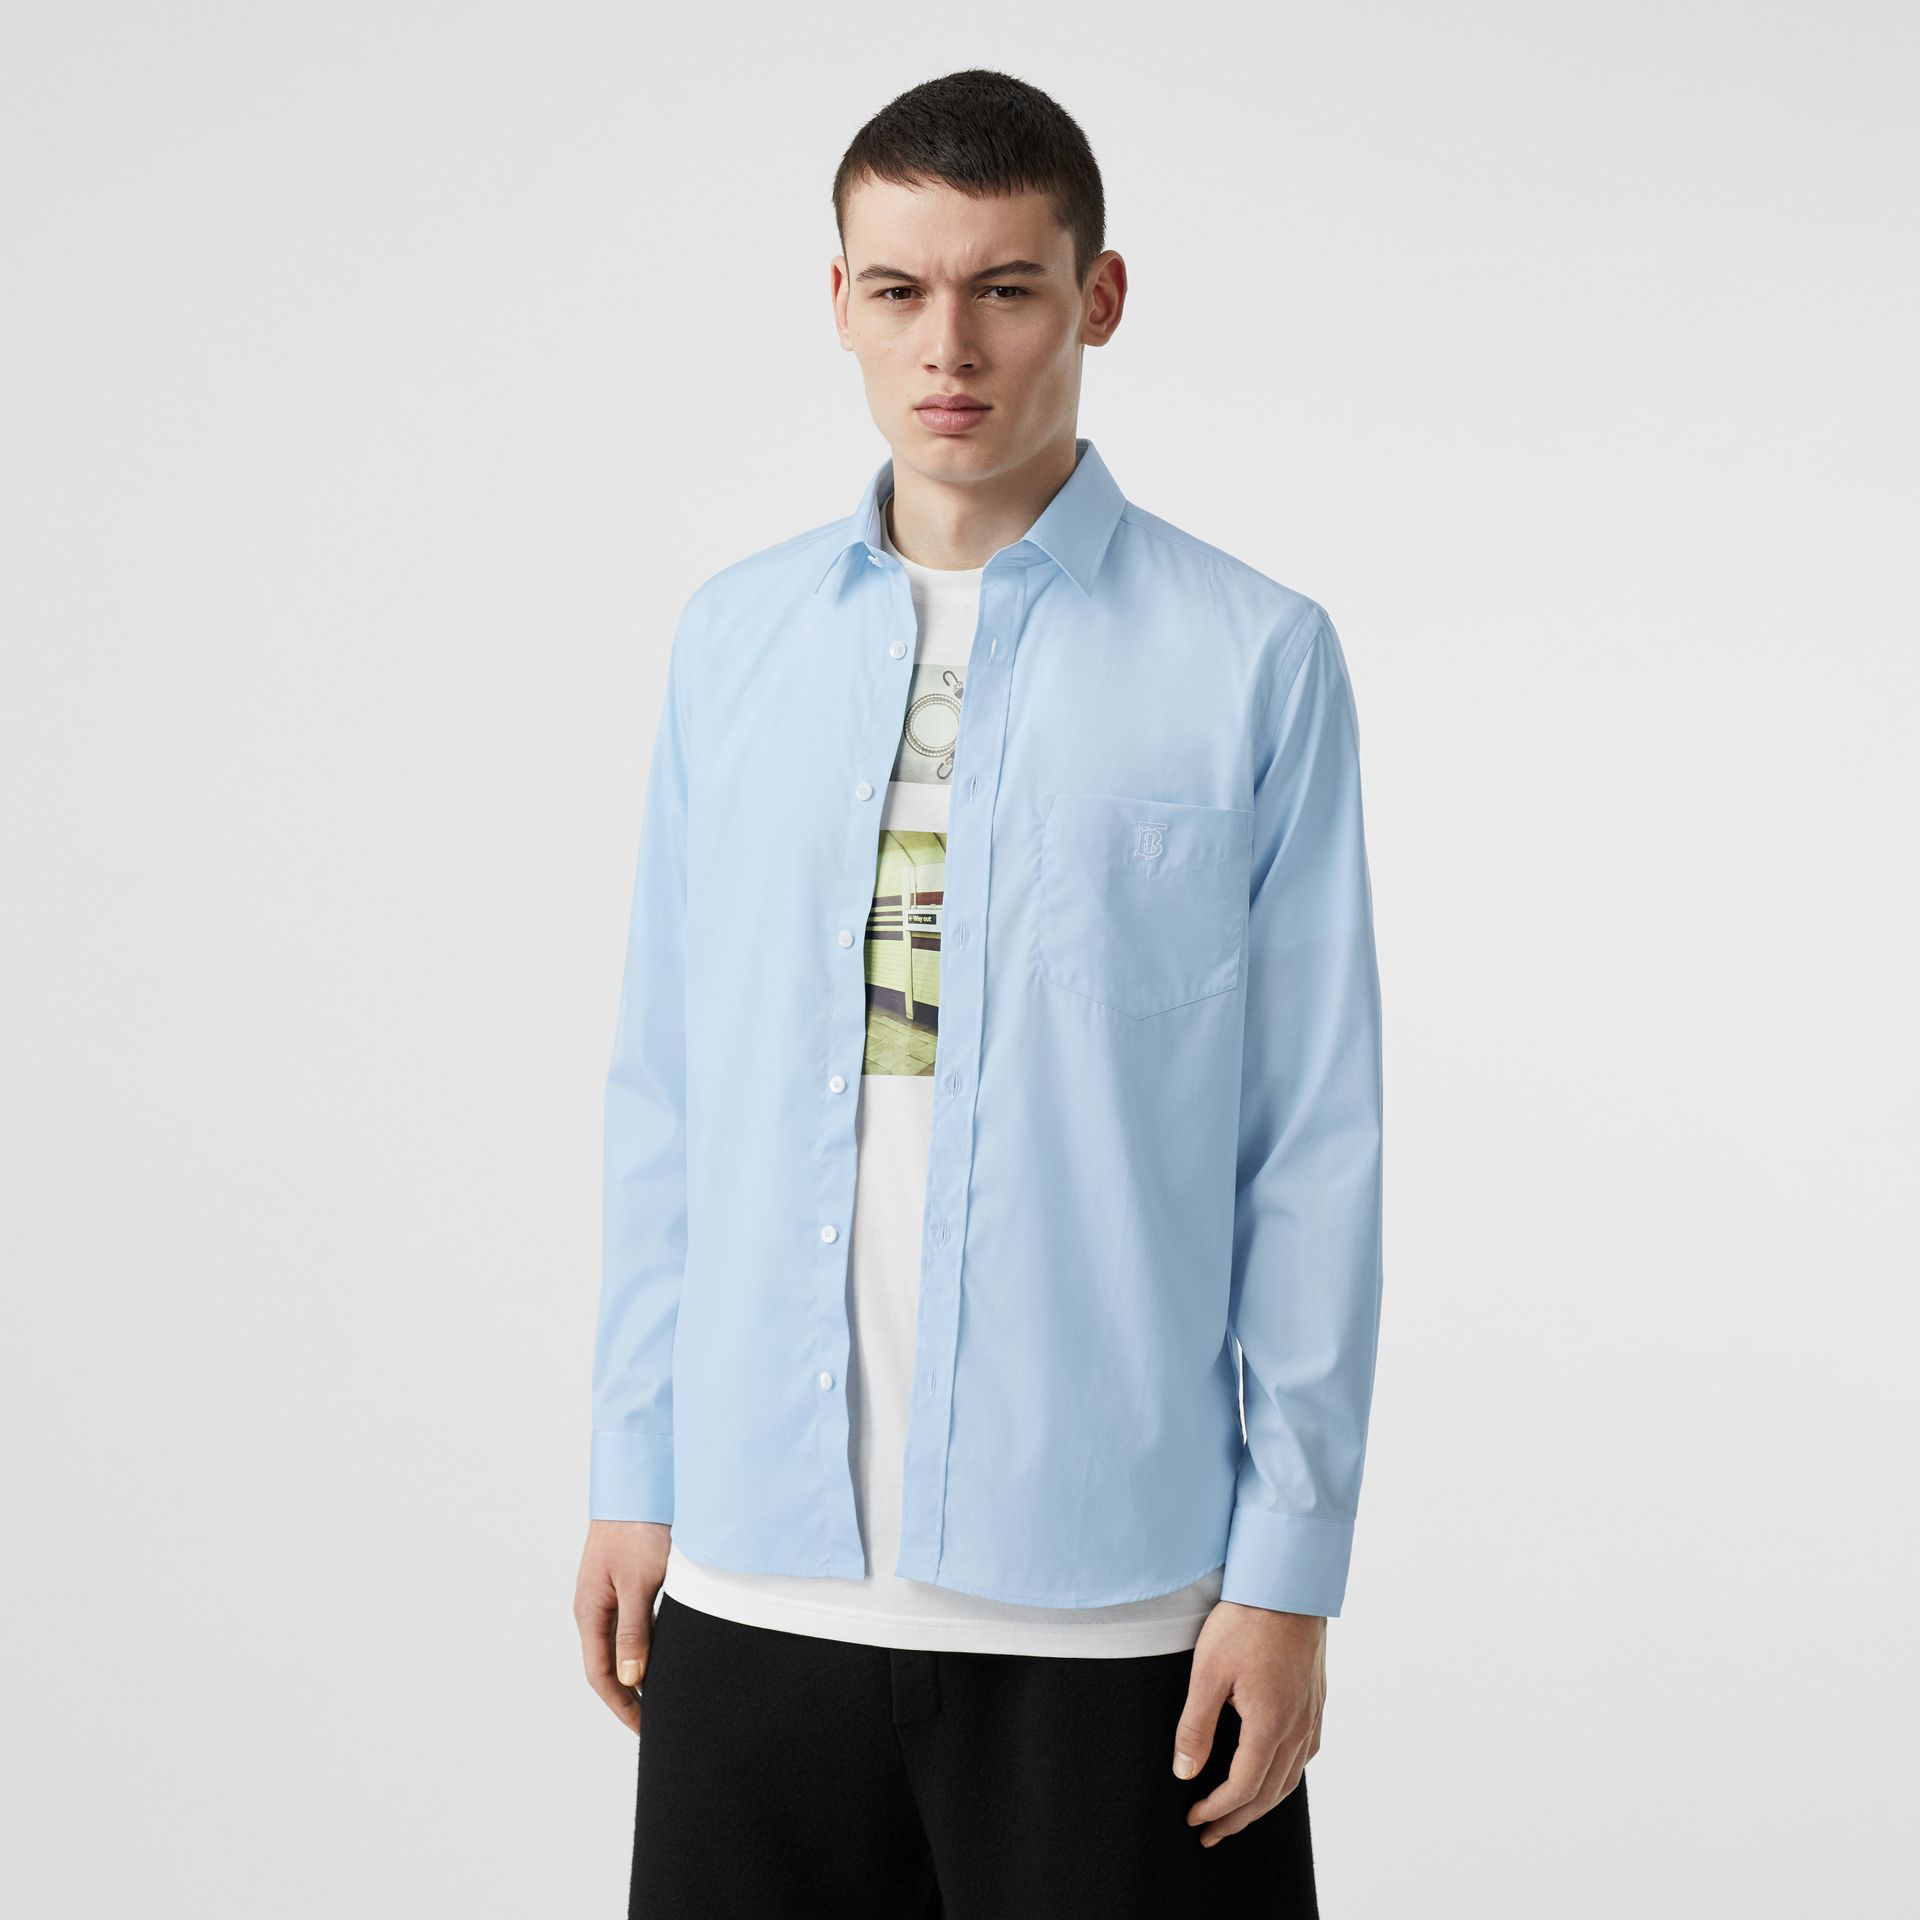 Monogram Motif Stretch Cotton Poplin Shirt in Pale Blue - Men | Burberry Hong Kong S.A.R - gallery image 4